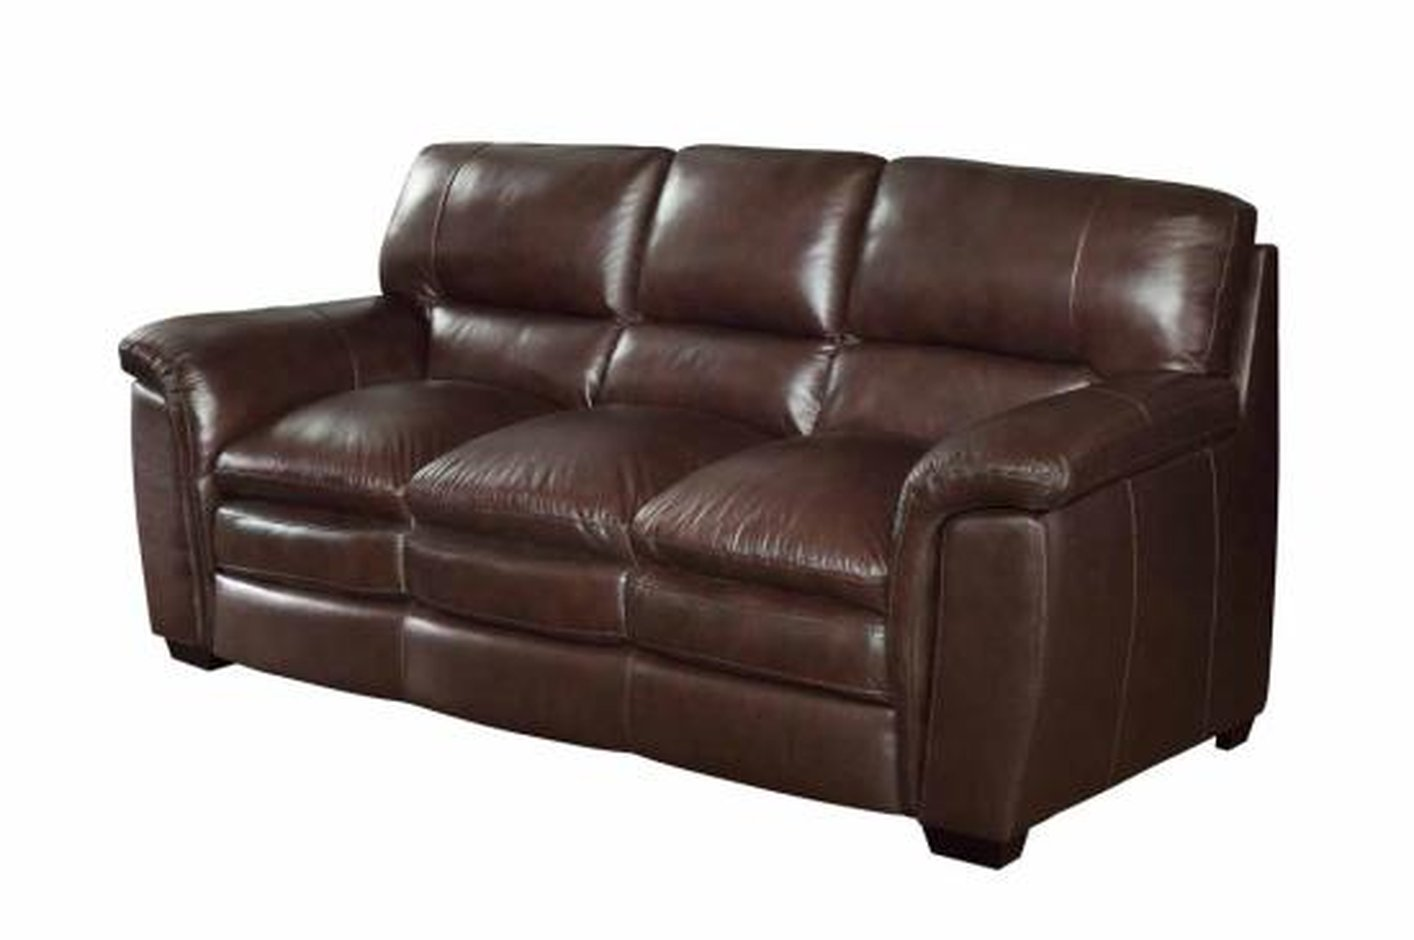 leather sofa couch er cafe brown home decor